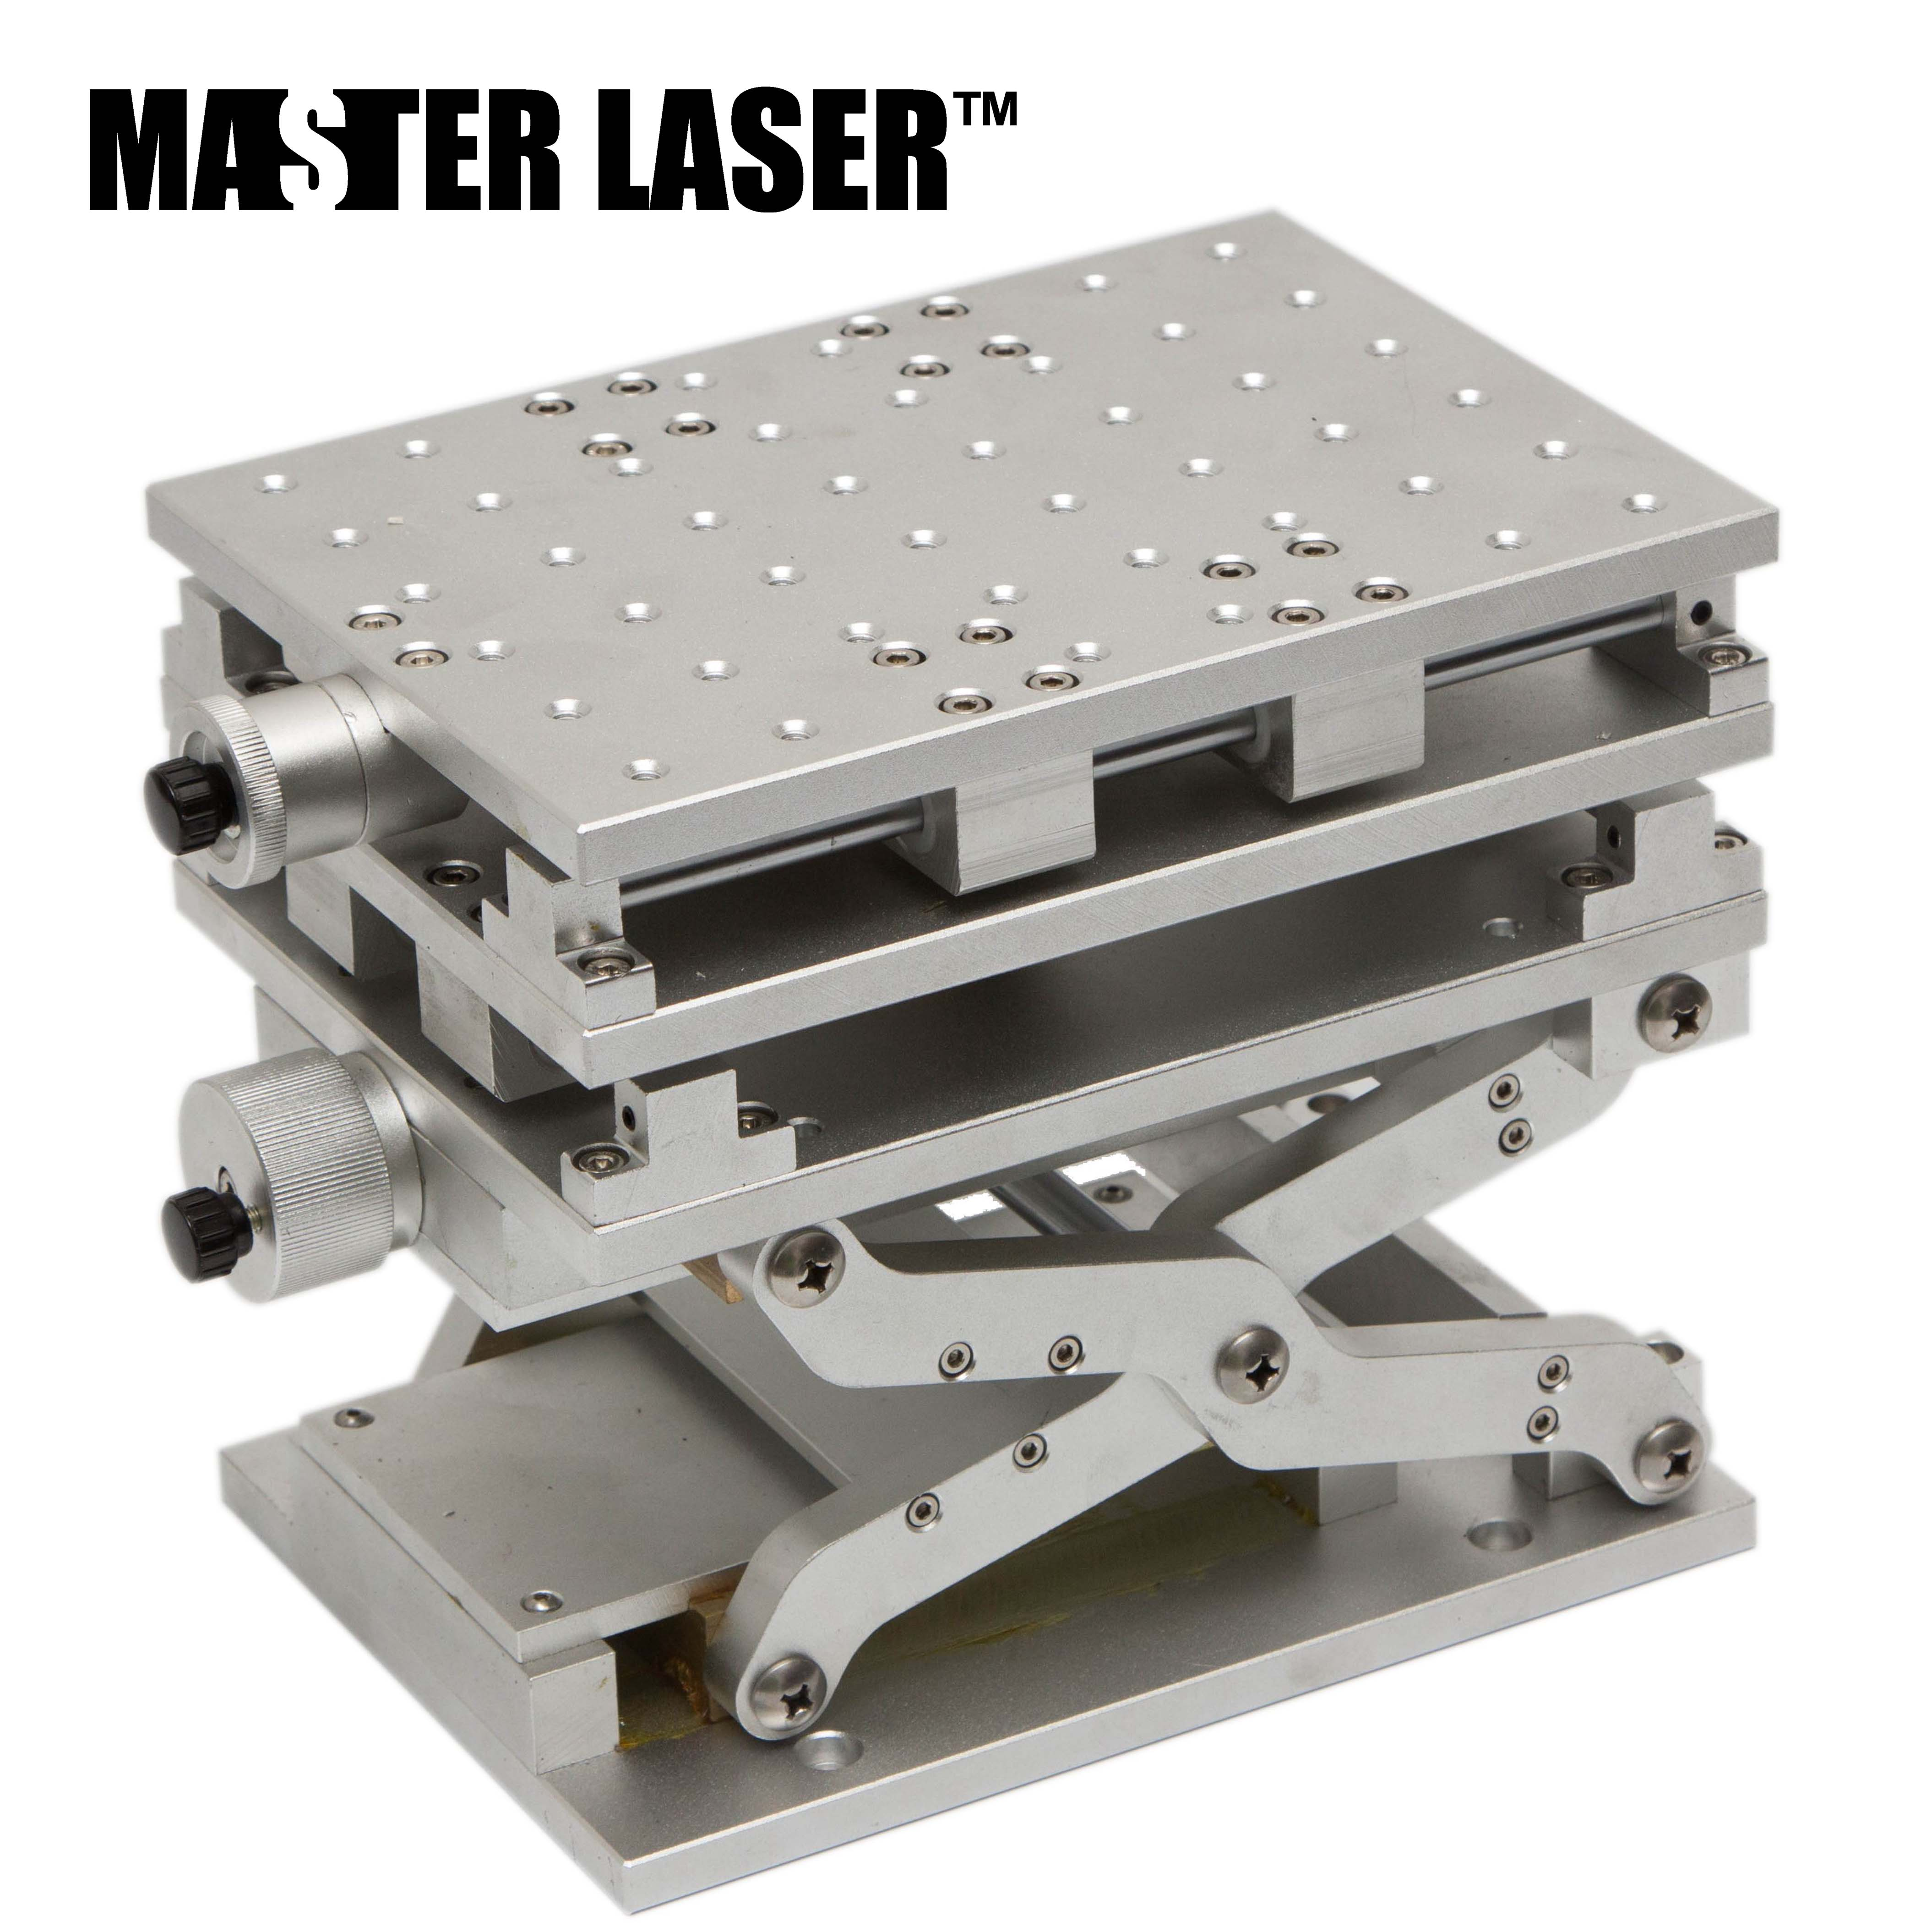 Laser Marking Engraving Machine  3 Axis Moving Table 210*150mm Working Size Portable Cabinet Case XYZ AXIS Table